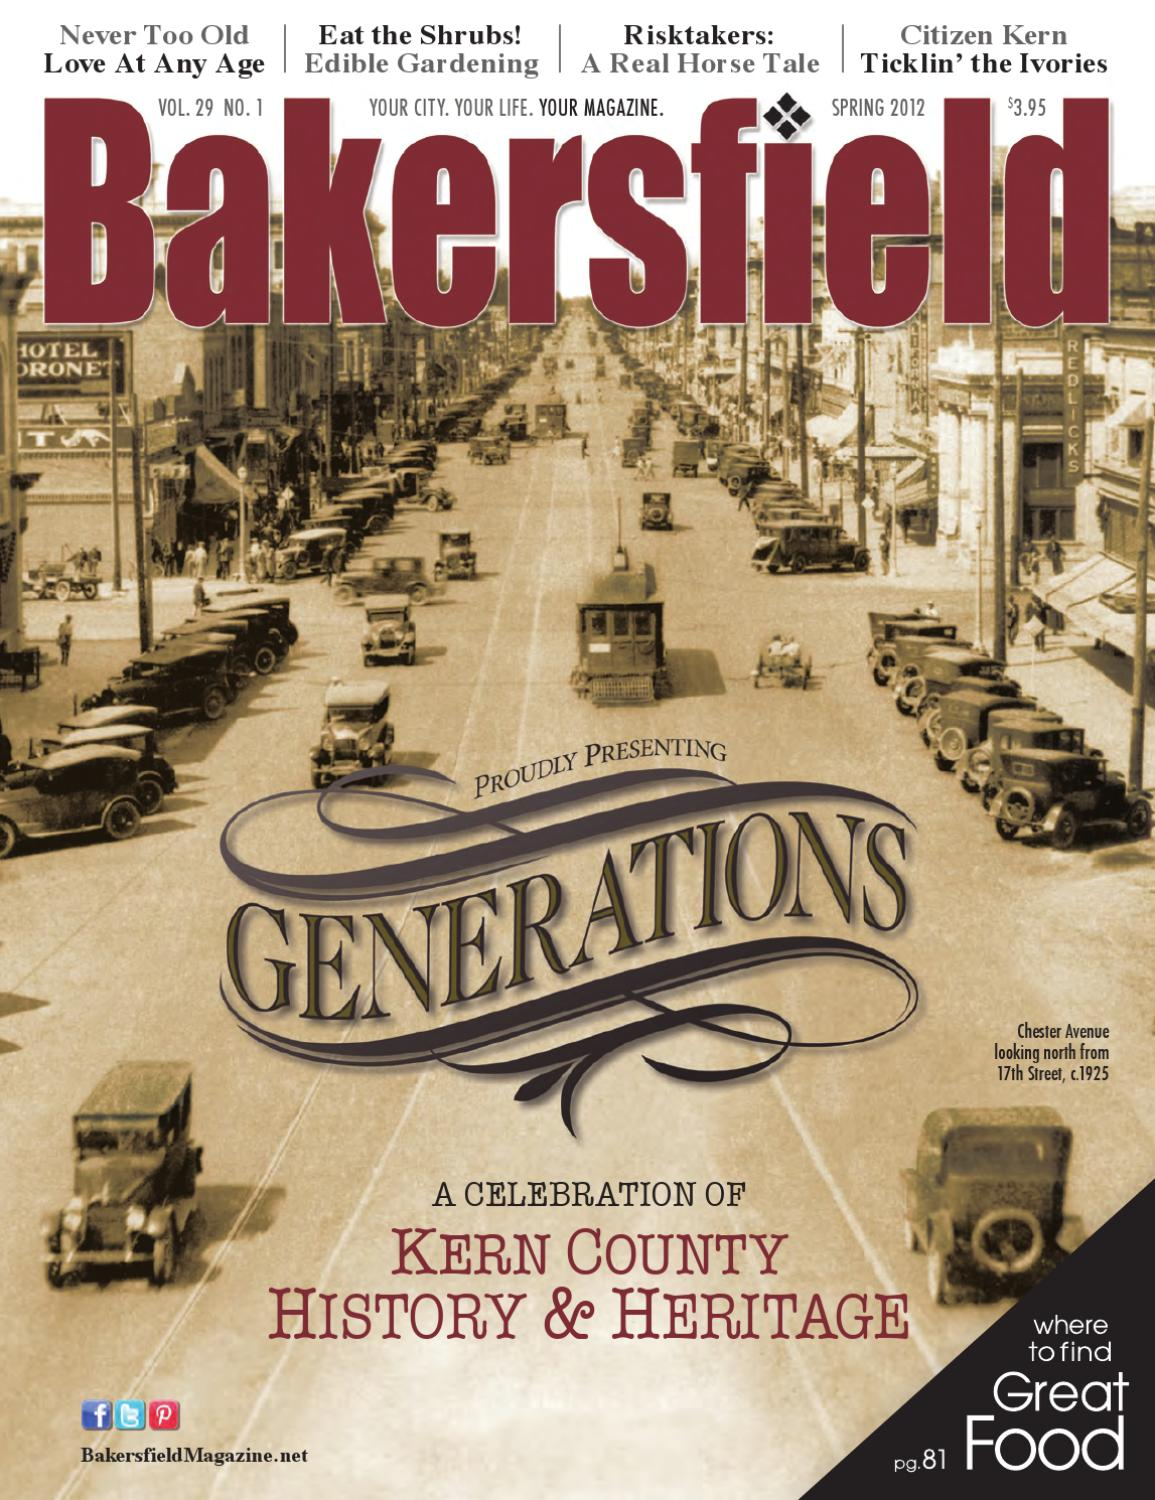 Bakersfield magazine 29 1 generations by bakersfield for Bakersfield home magazine